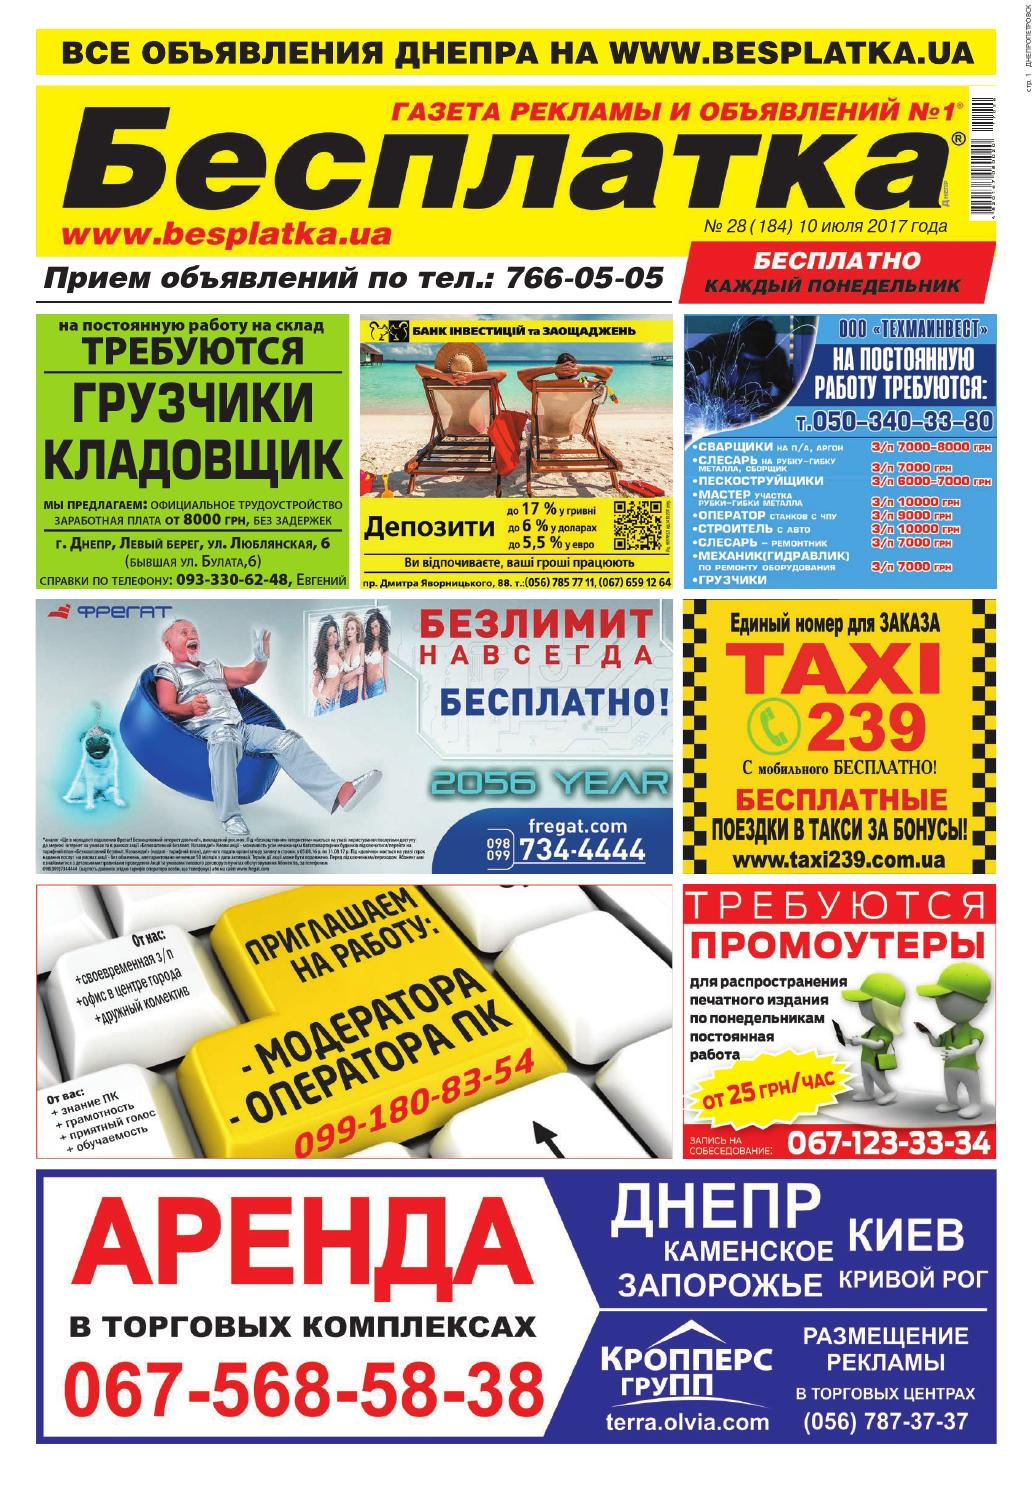 Besplatka  28 Днепр by besplatka ukraine - issuu e1a04049db7